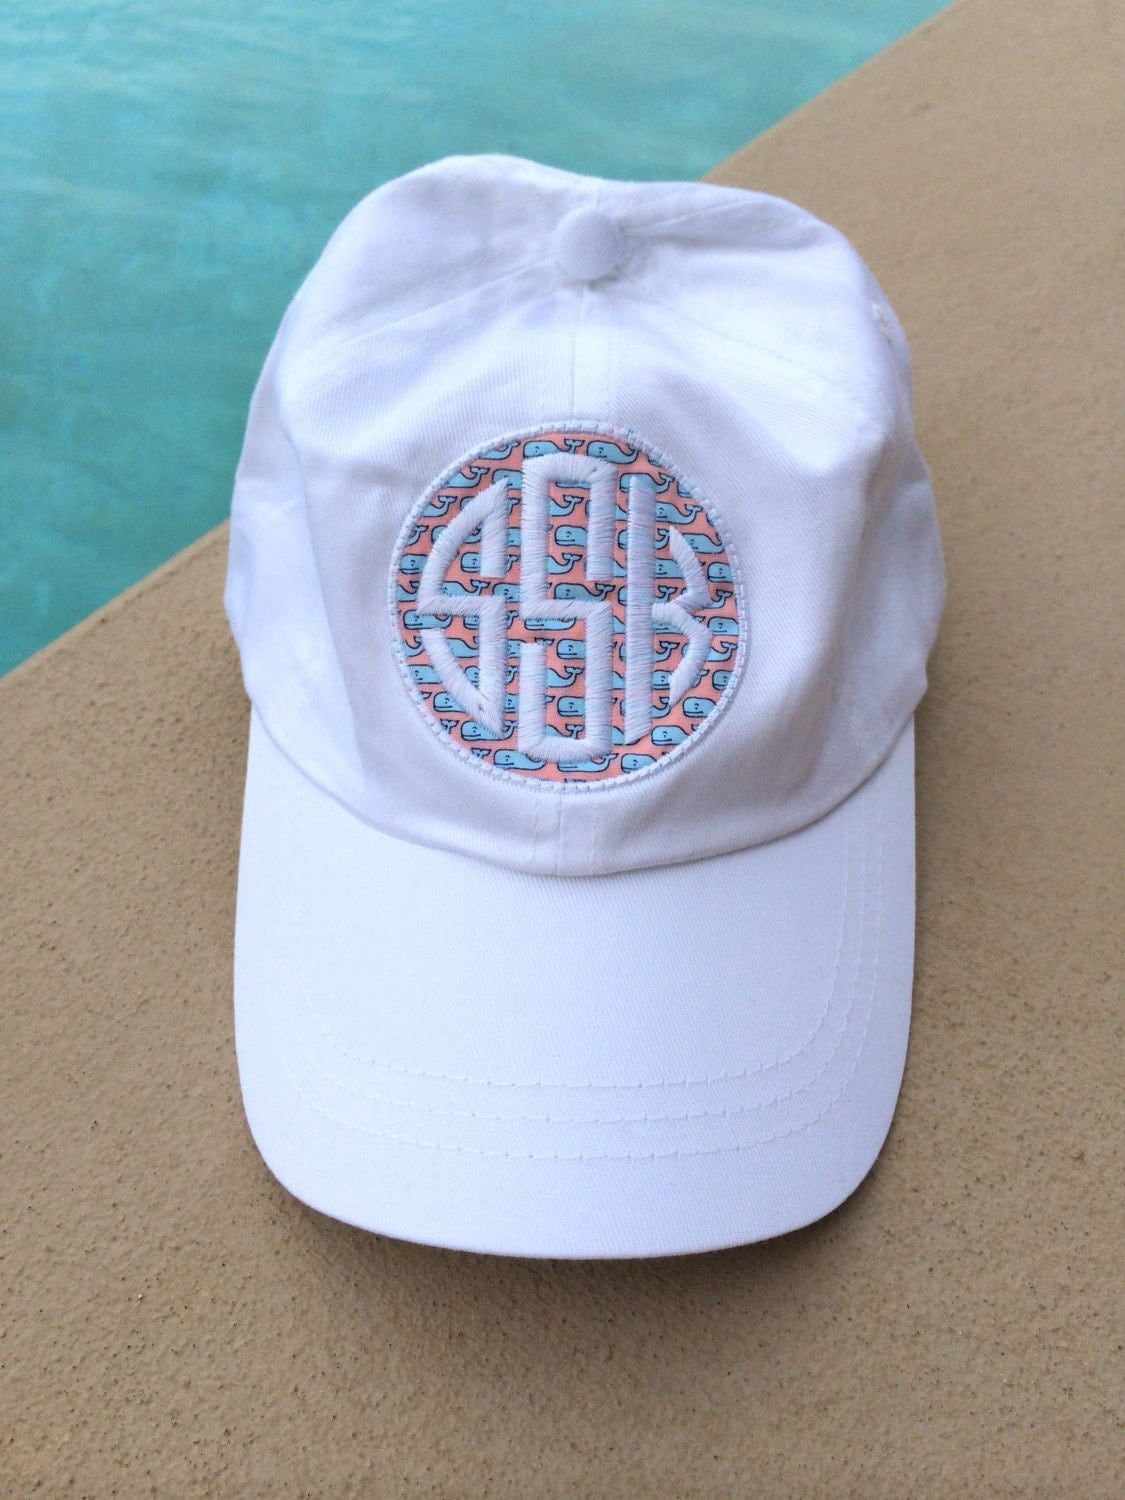 preppy whale fabric monogrammed baseball hat